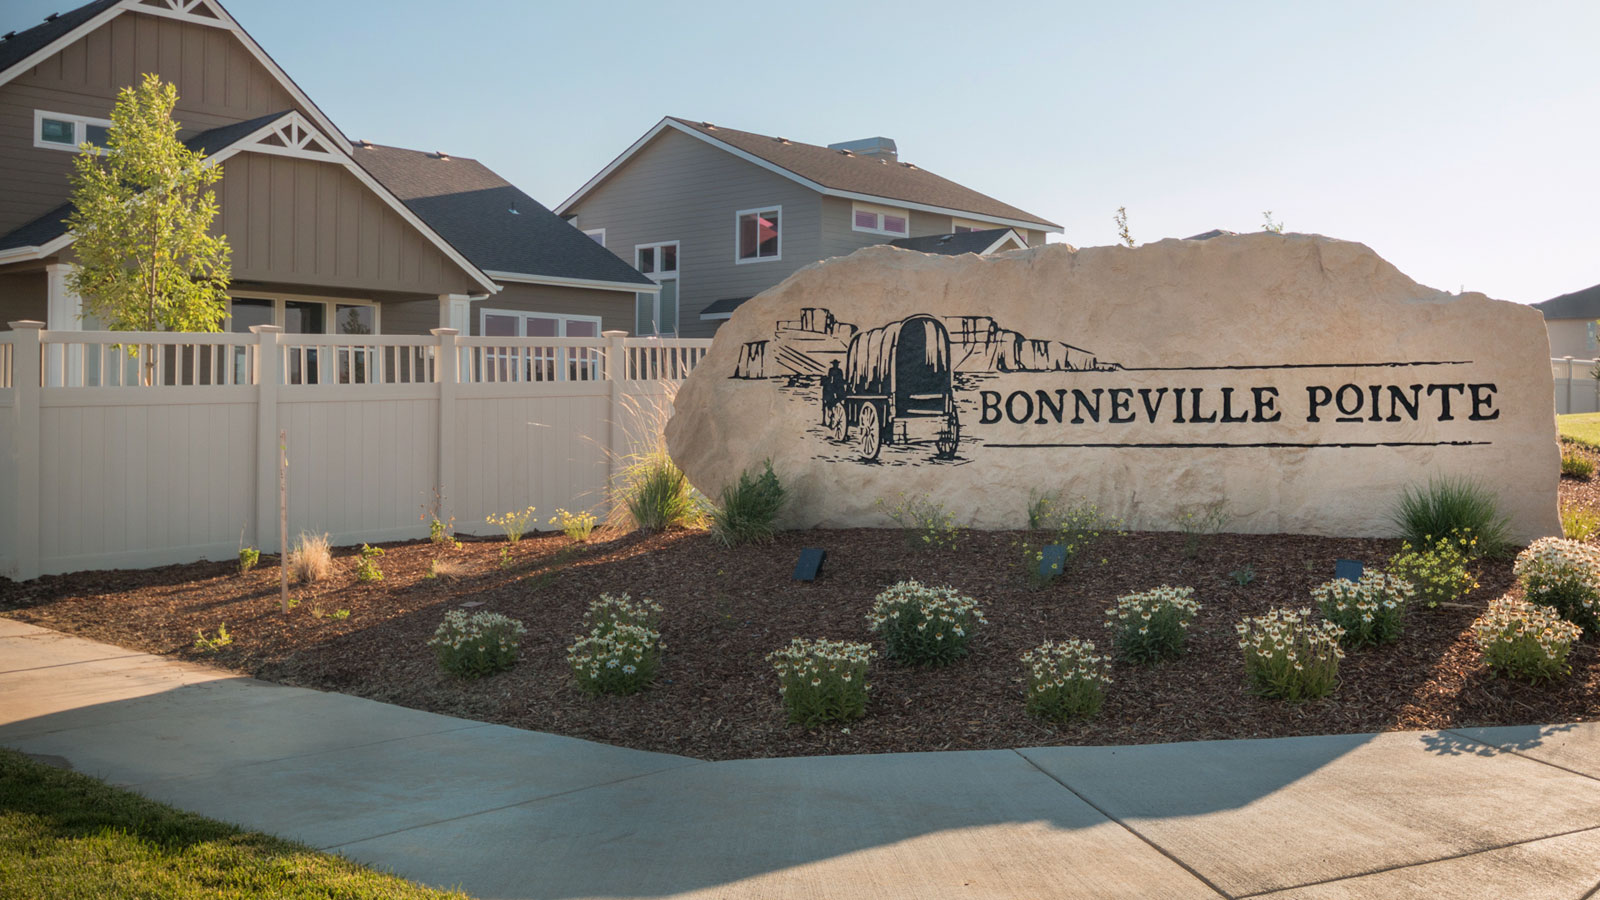 Homes for sale at Bonnievile Pointe Subdivision Boise Idaho